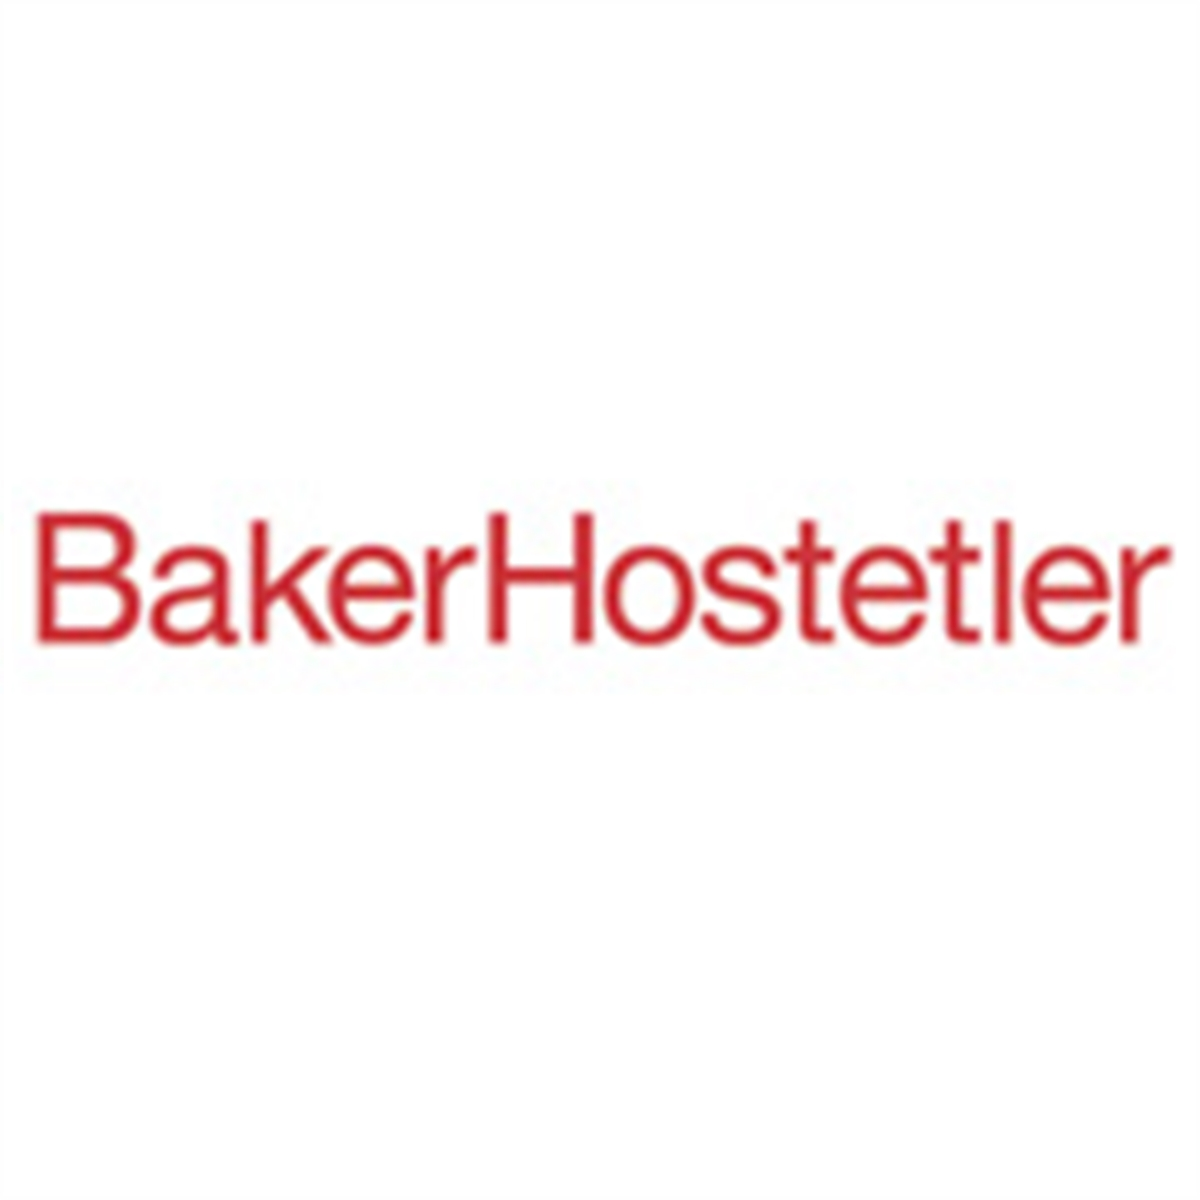 OSHA New Reporting Requirements and Anti-Retaliation Rules for Workplace Safety Violations | BakerHostetler - JDSupra